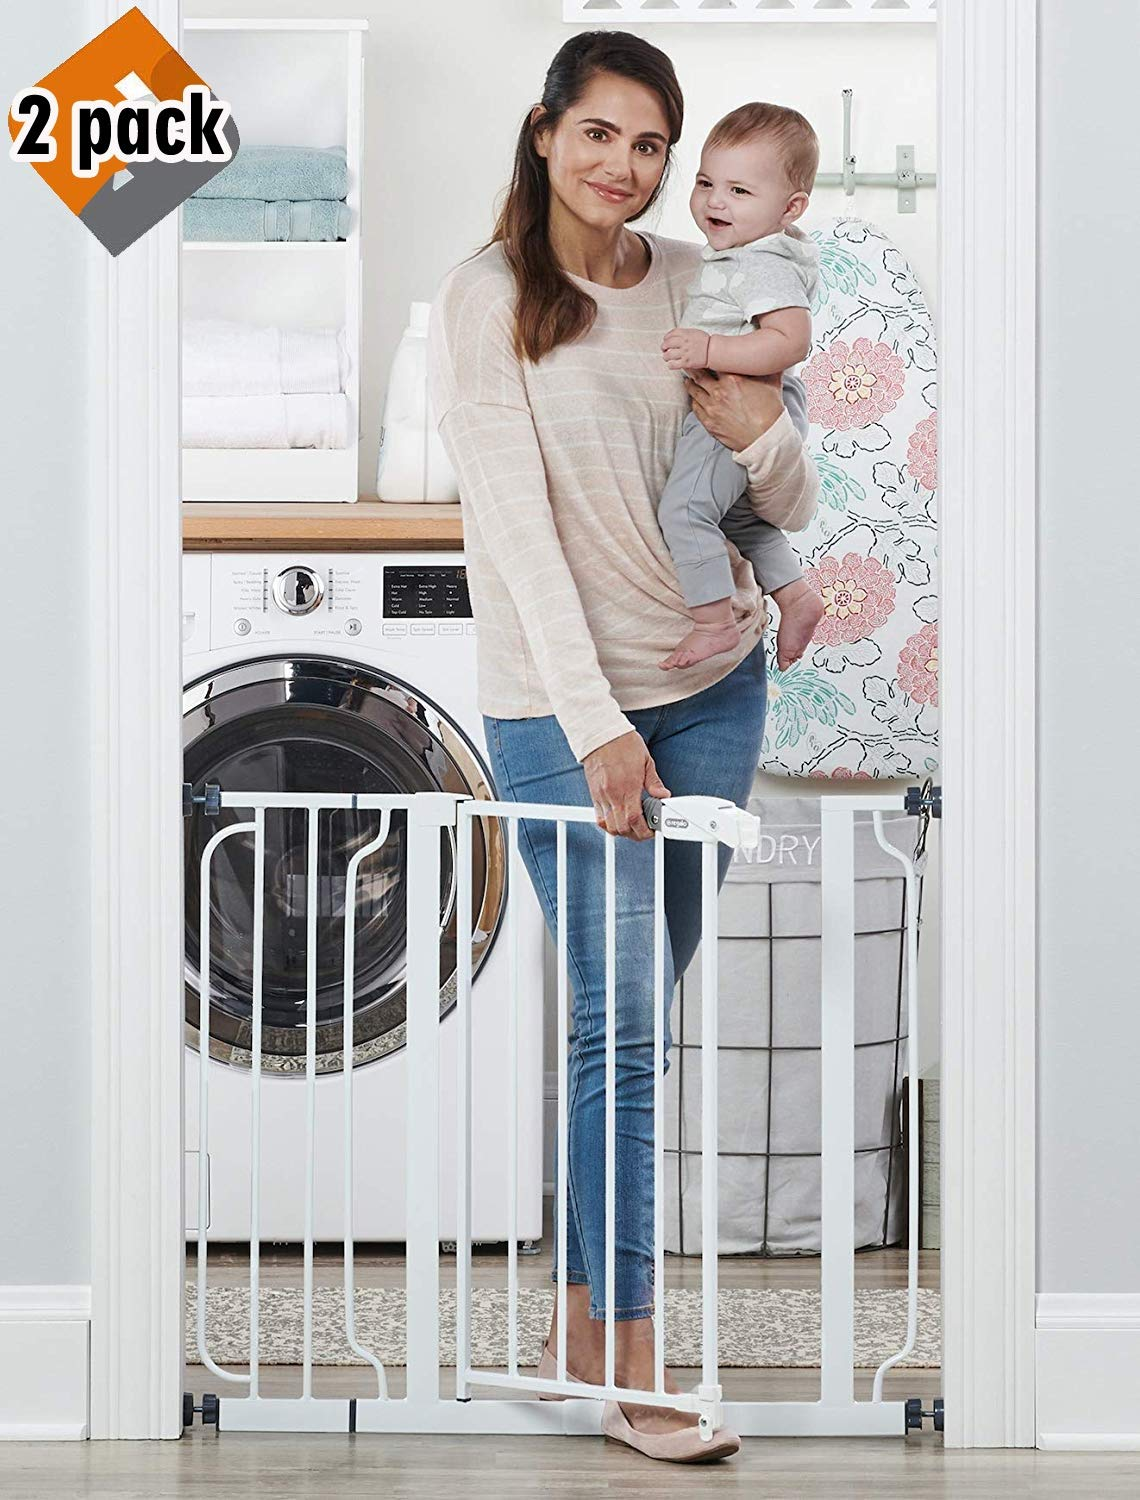 Regalo Easy Step 38.5-Inch Extra Wide Walk Thru Baby Gate, Includes 6-Inch Extension Kit, Pressure Mount Kit, Wall Cups and Mounting Kit, 2 Pack by Regalo